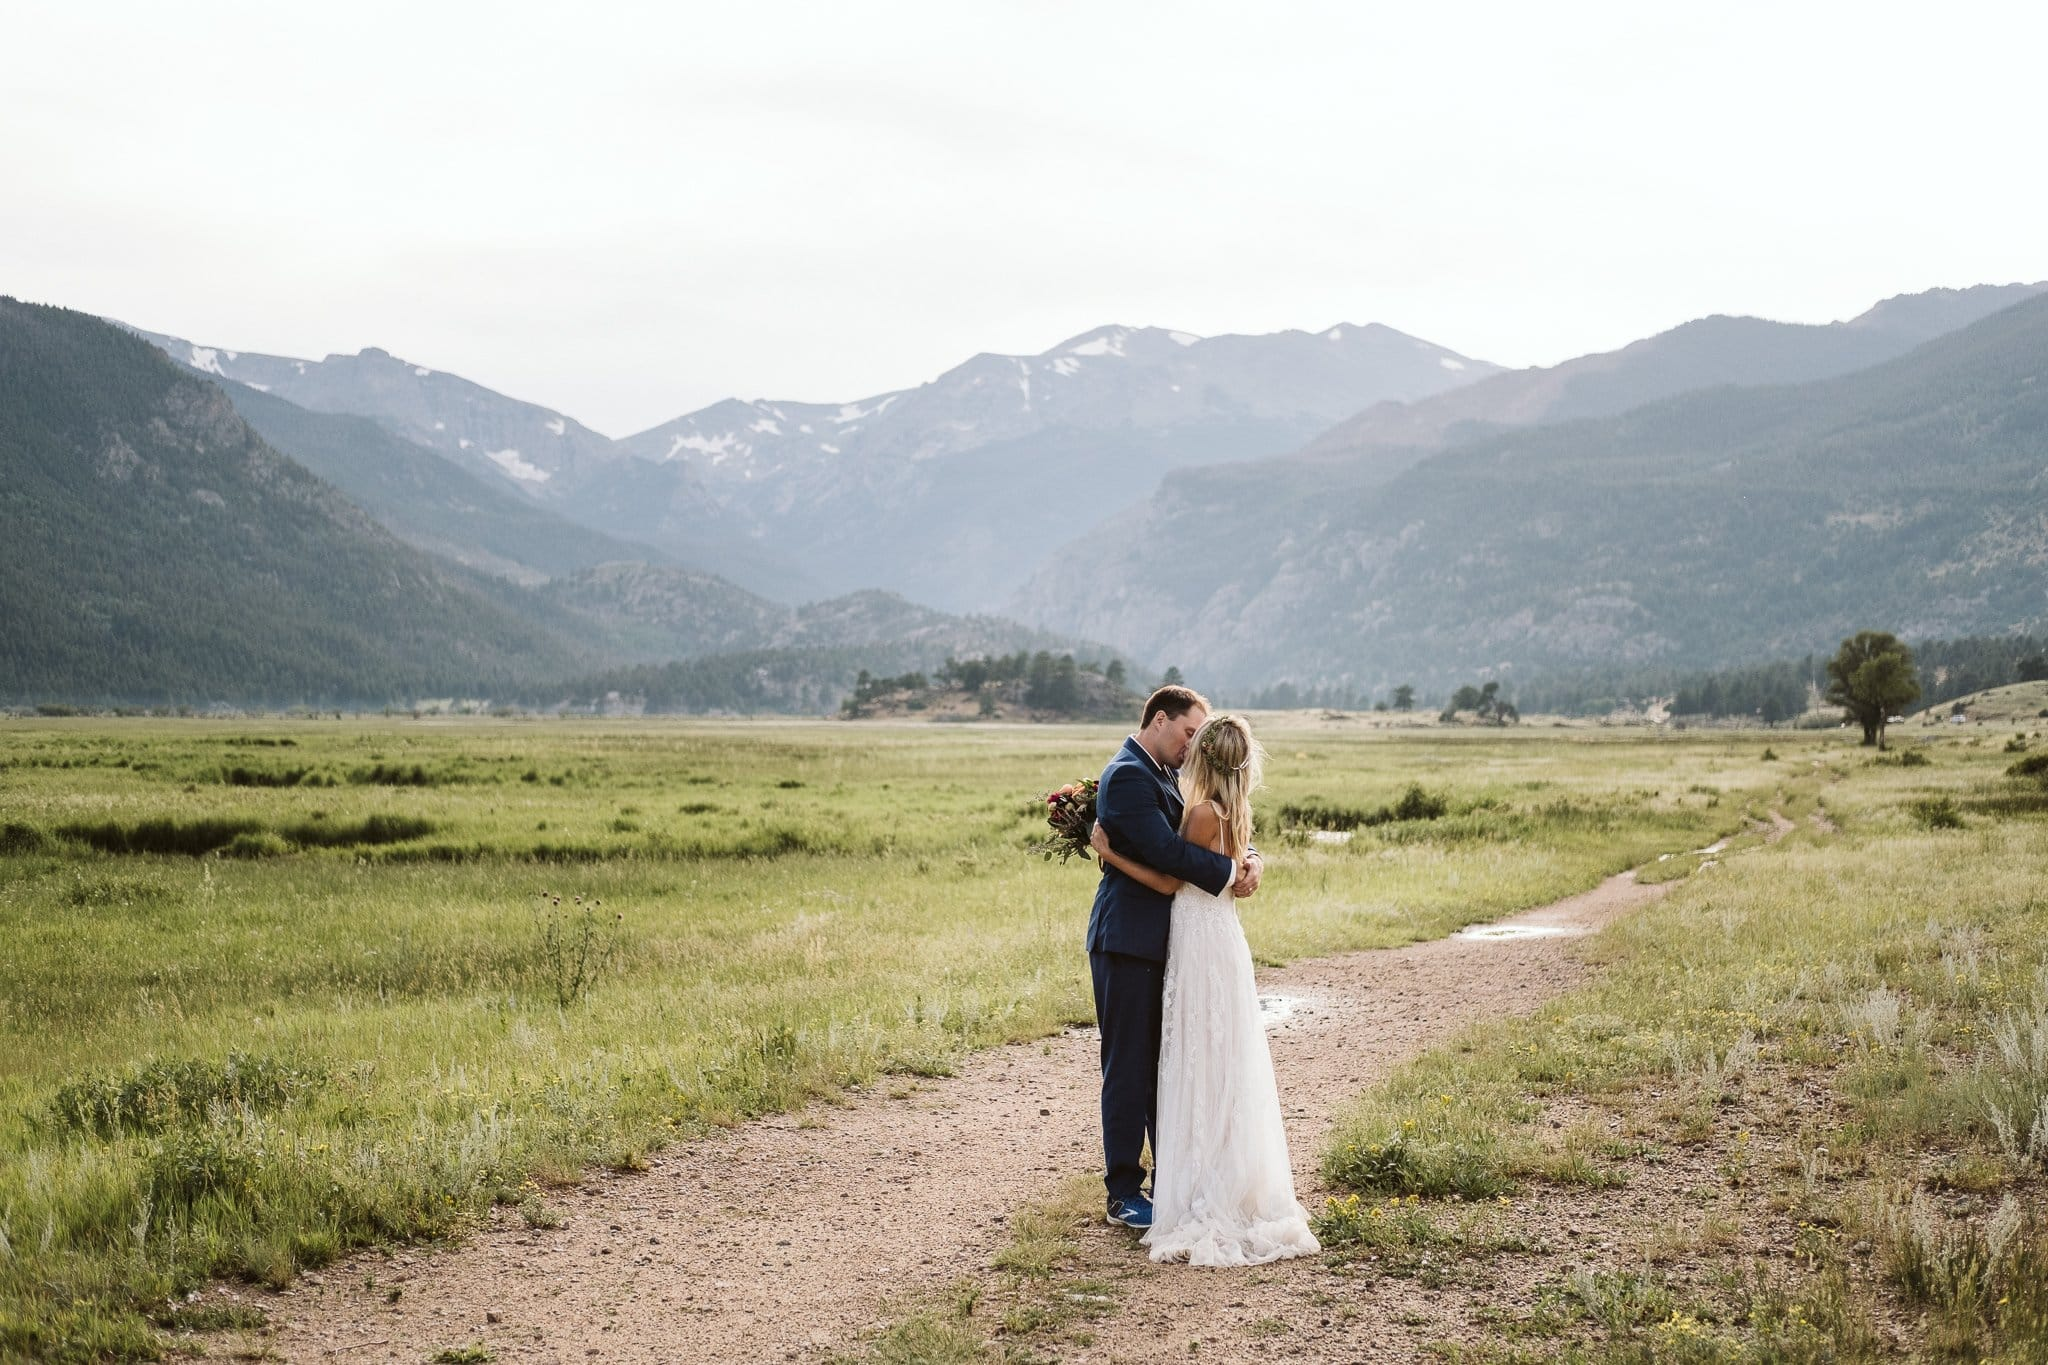 Bride and groom hiking in Moraine Valley for Rocky Mountain National Park elopement, Colorado elopement photographer, adventure elopement